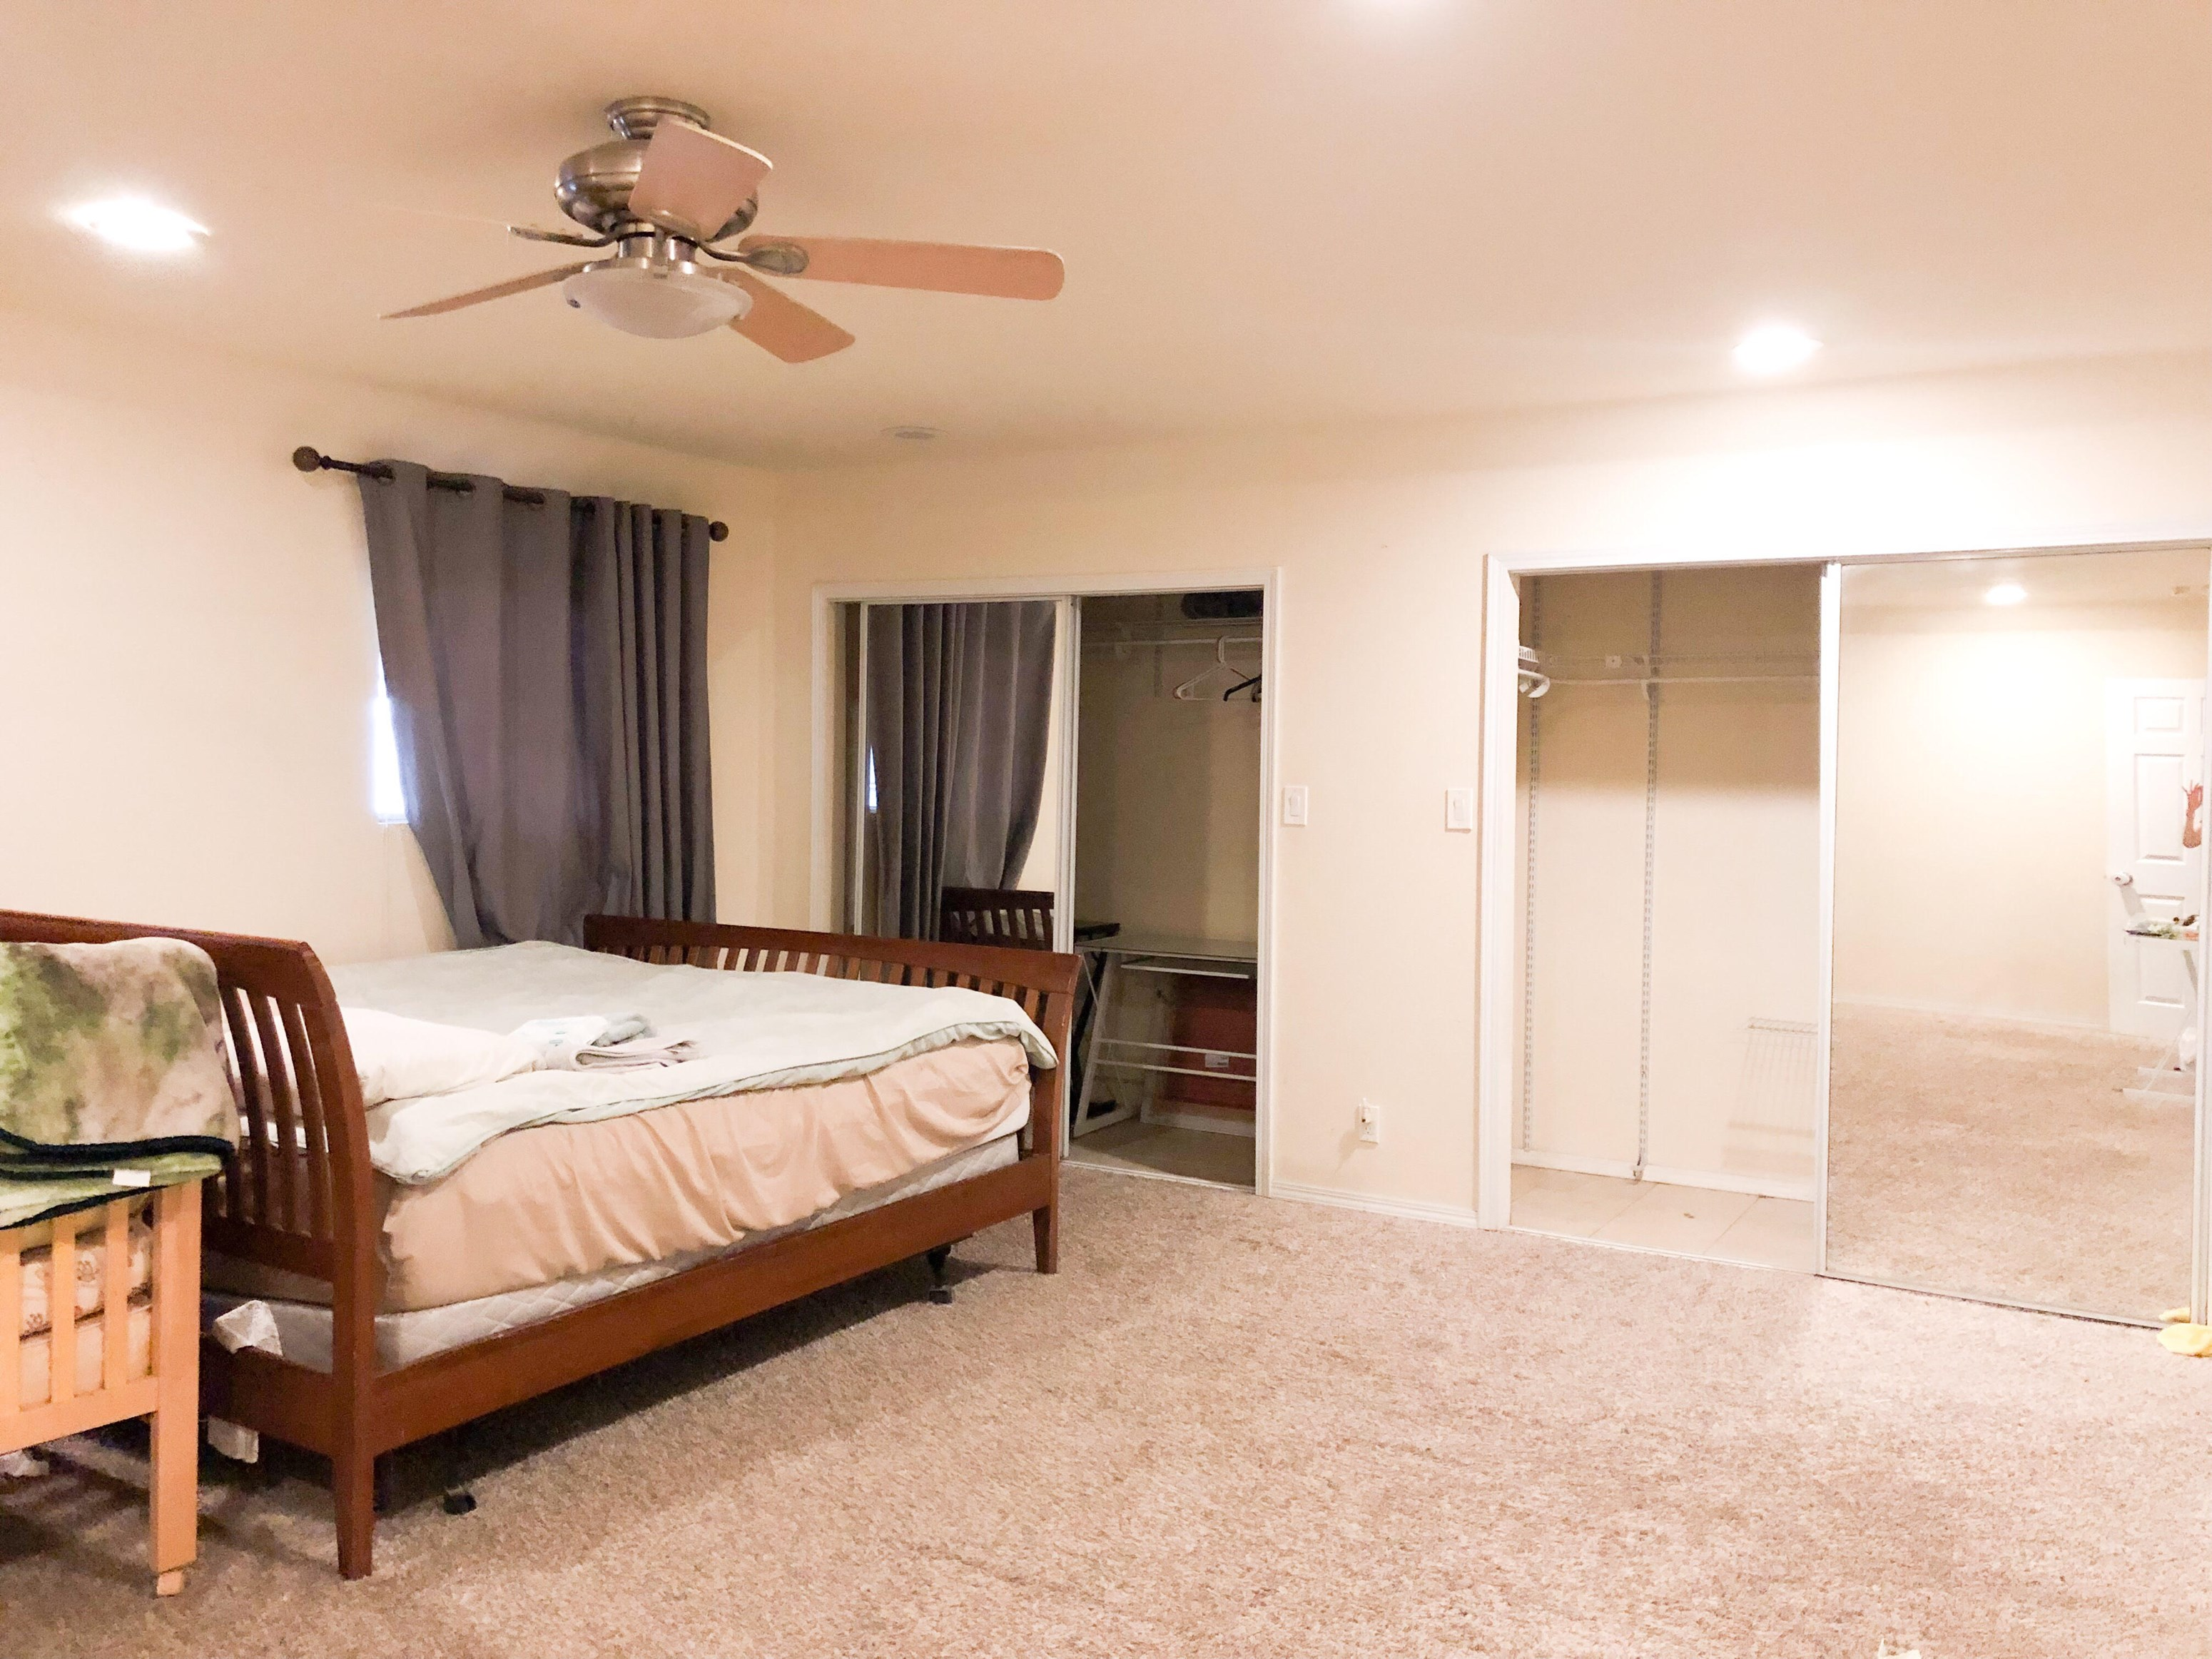 Master Bedroom, Private Bathroom W/ Jacuzzi Tub & Shower, 2 ...